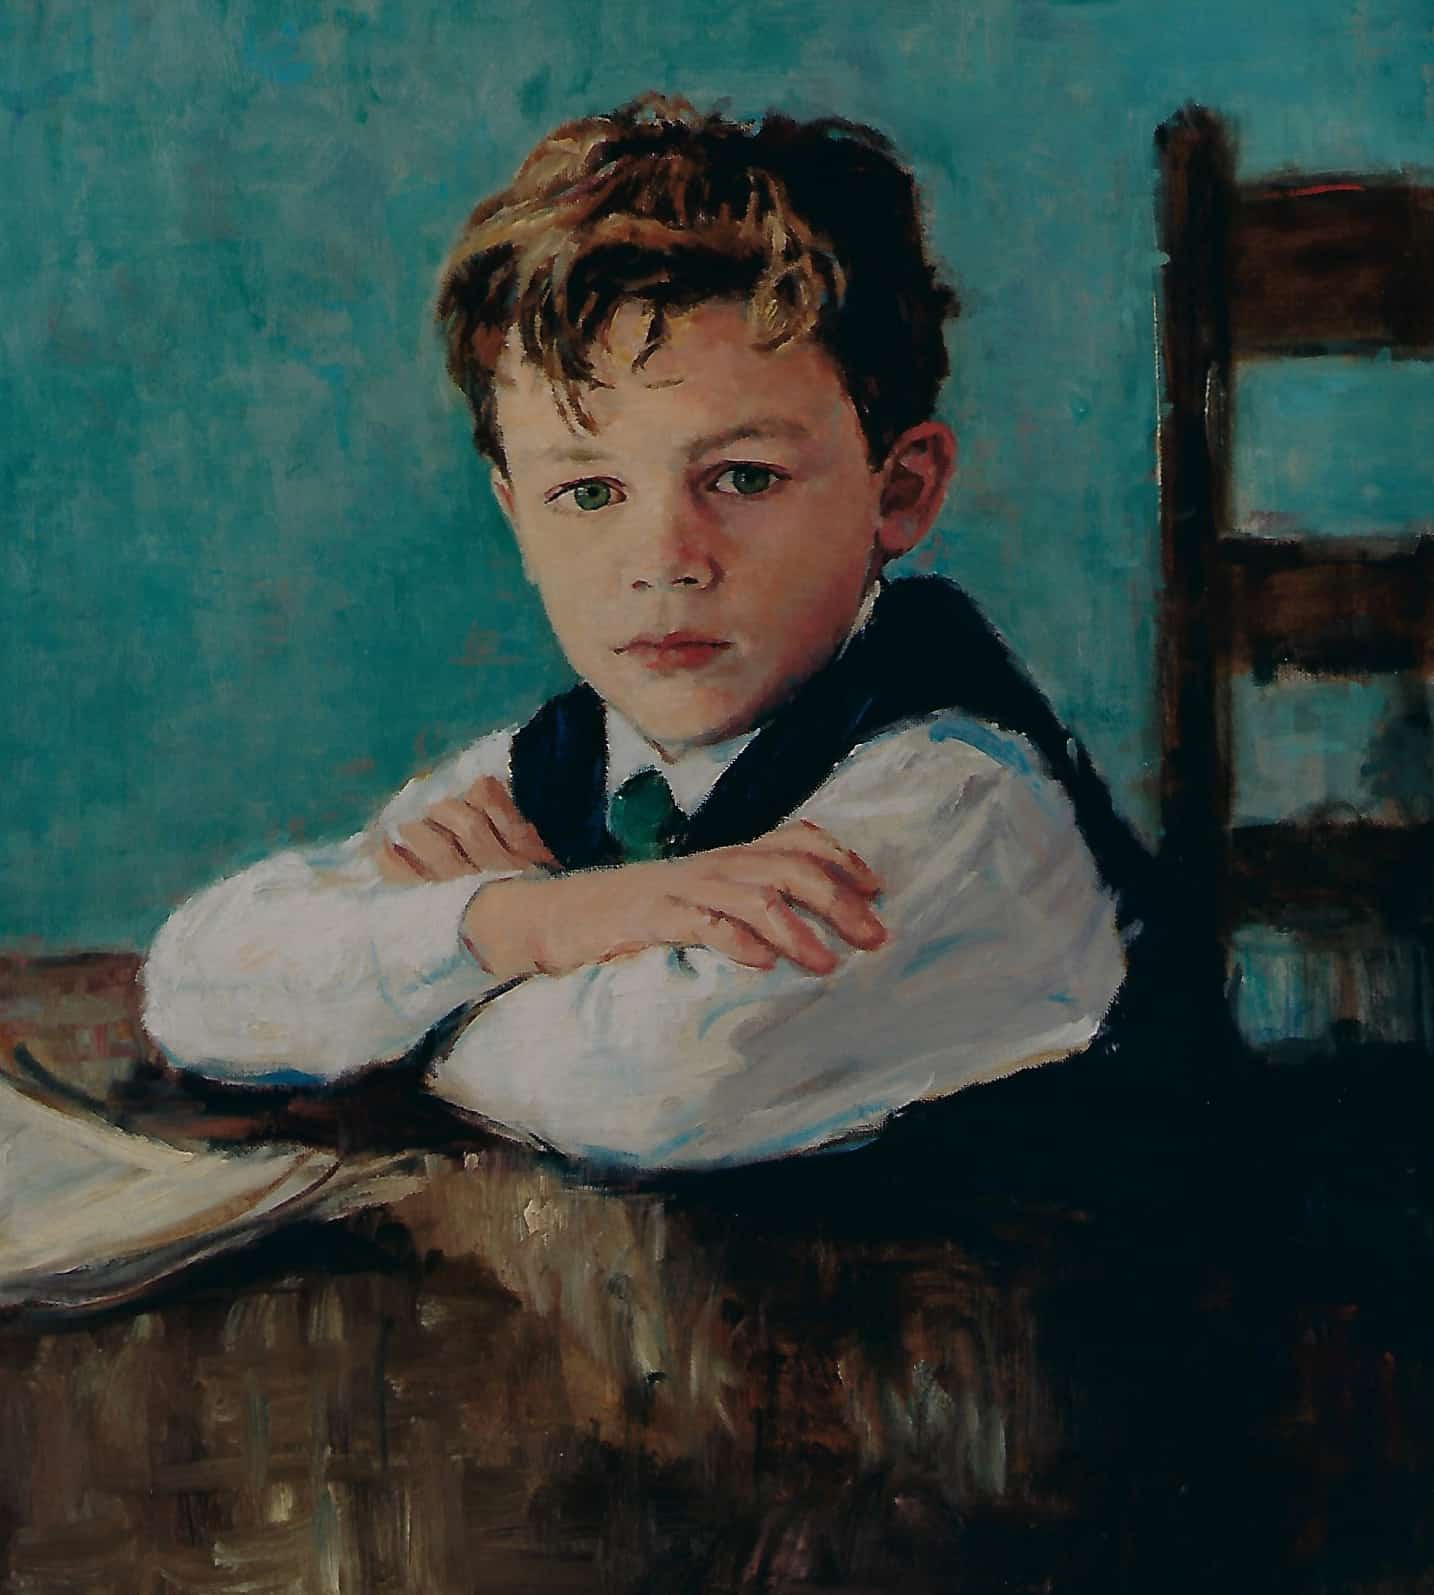 portrait of boy sitting at table